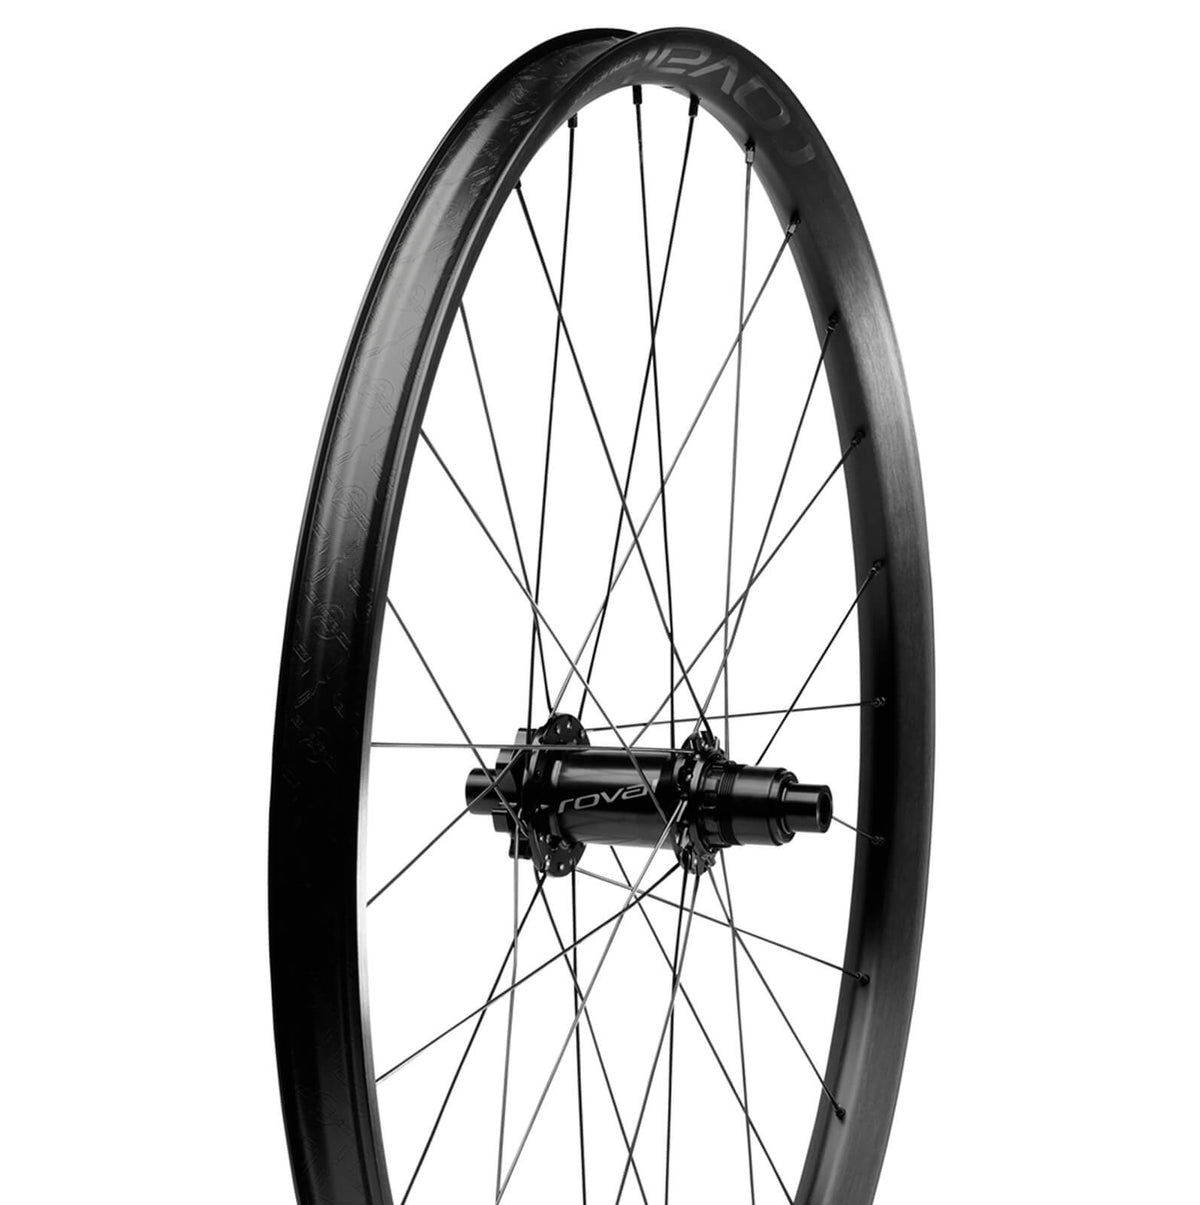 Traverse rear wheel